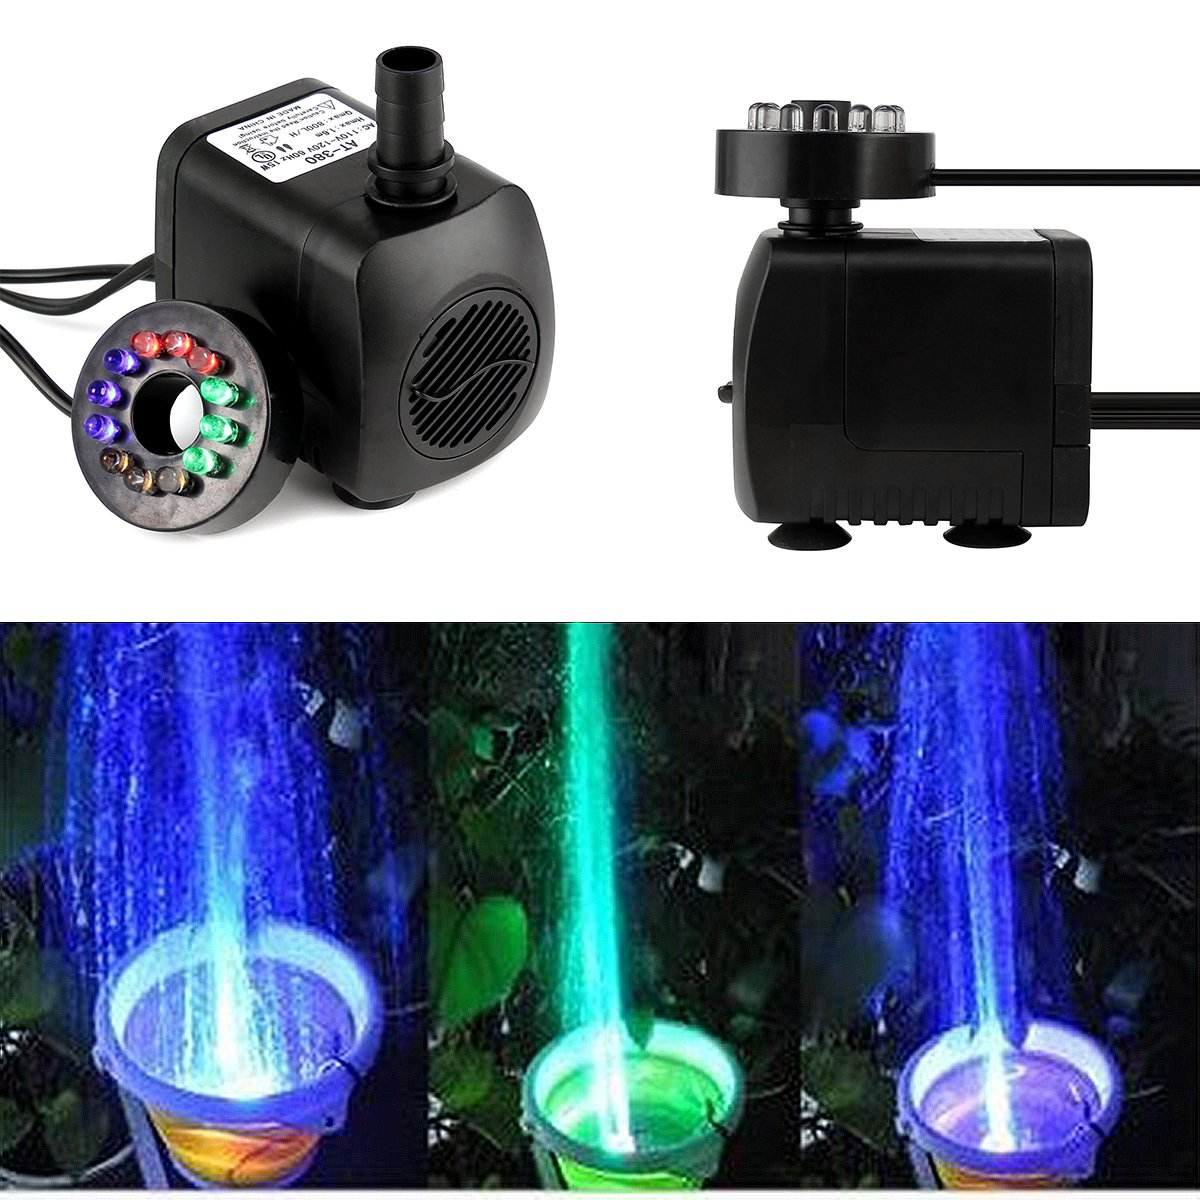 SOONHUA 12 LED Light Submersible Water Pump Aquarium KOI Fish Pond Fountain Pump 8W 600L/h